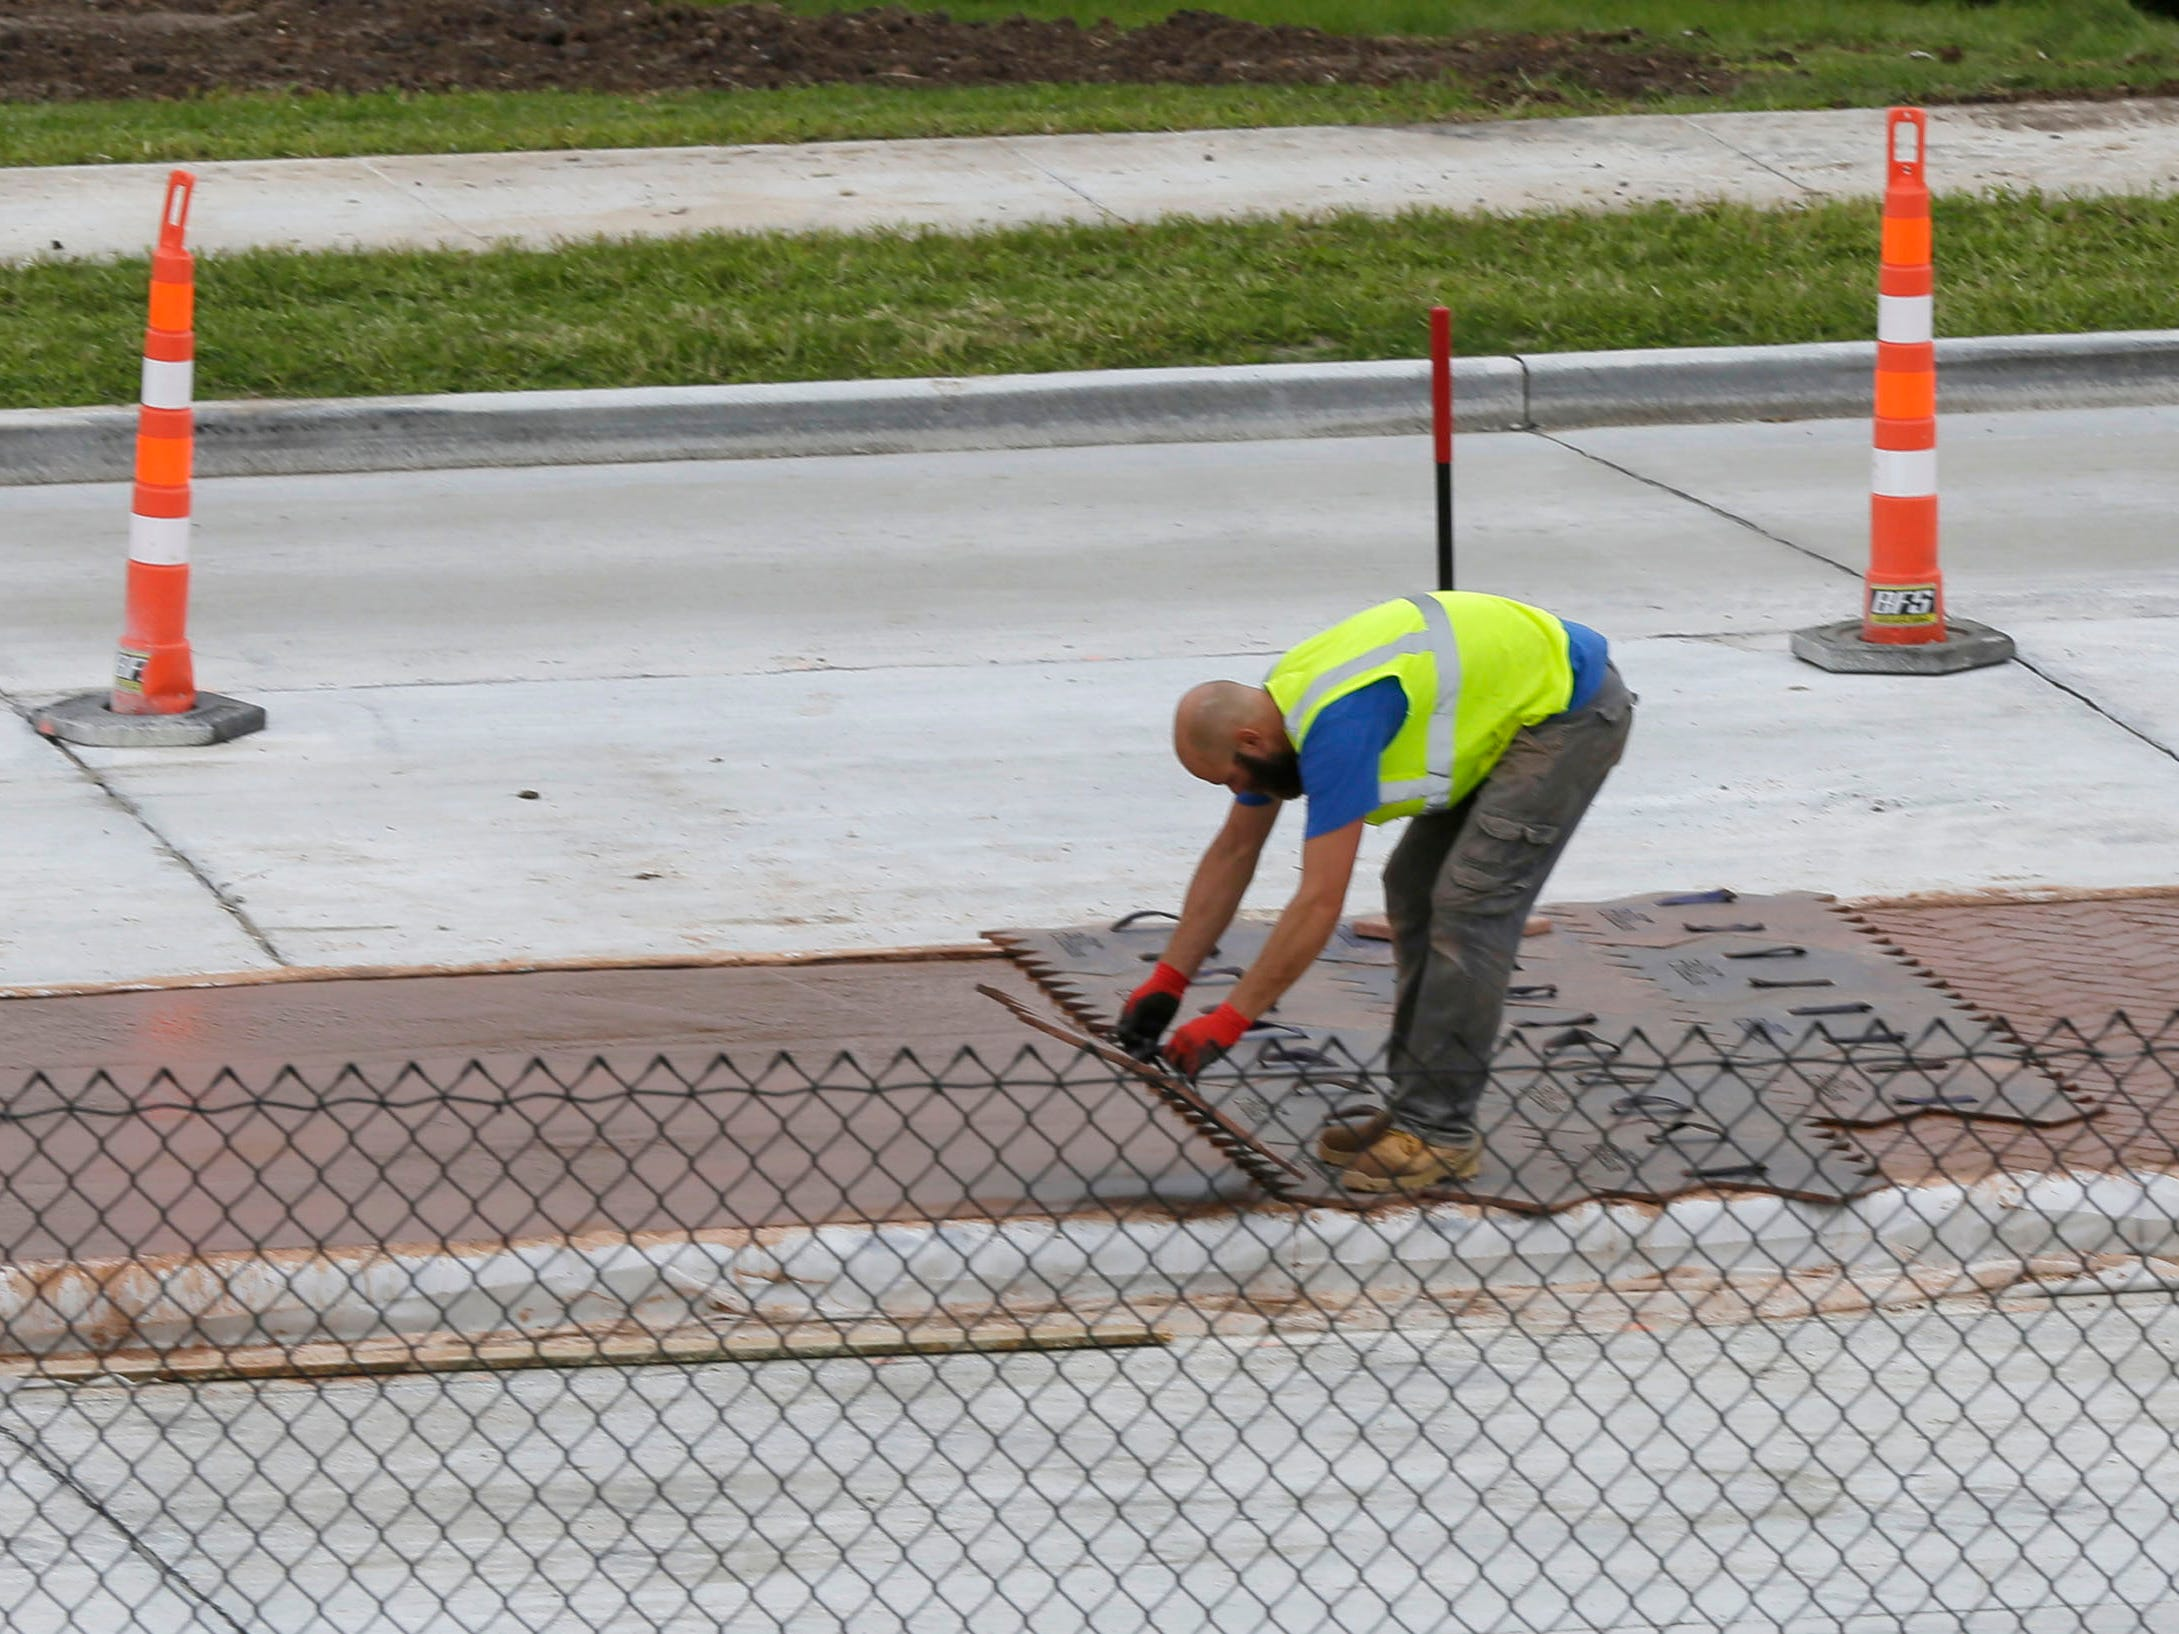 A construction worker places a mold designed to create a brick-like pattern on medians along Taylor Drive, Tuesday, October 2, 2018, in Sheboygan, Wis.